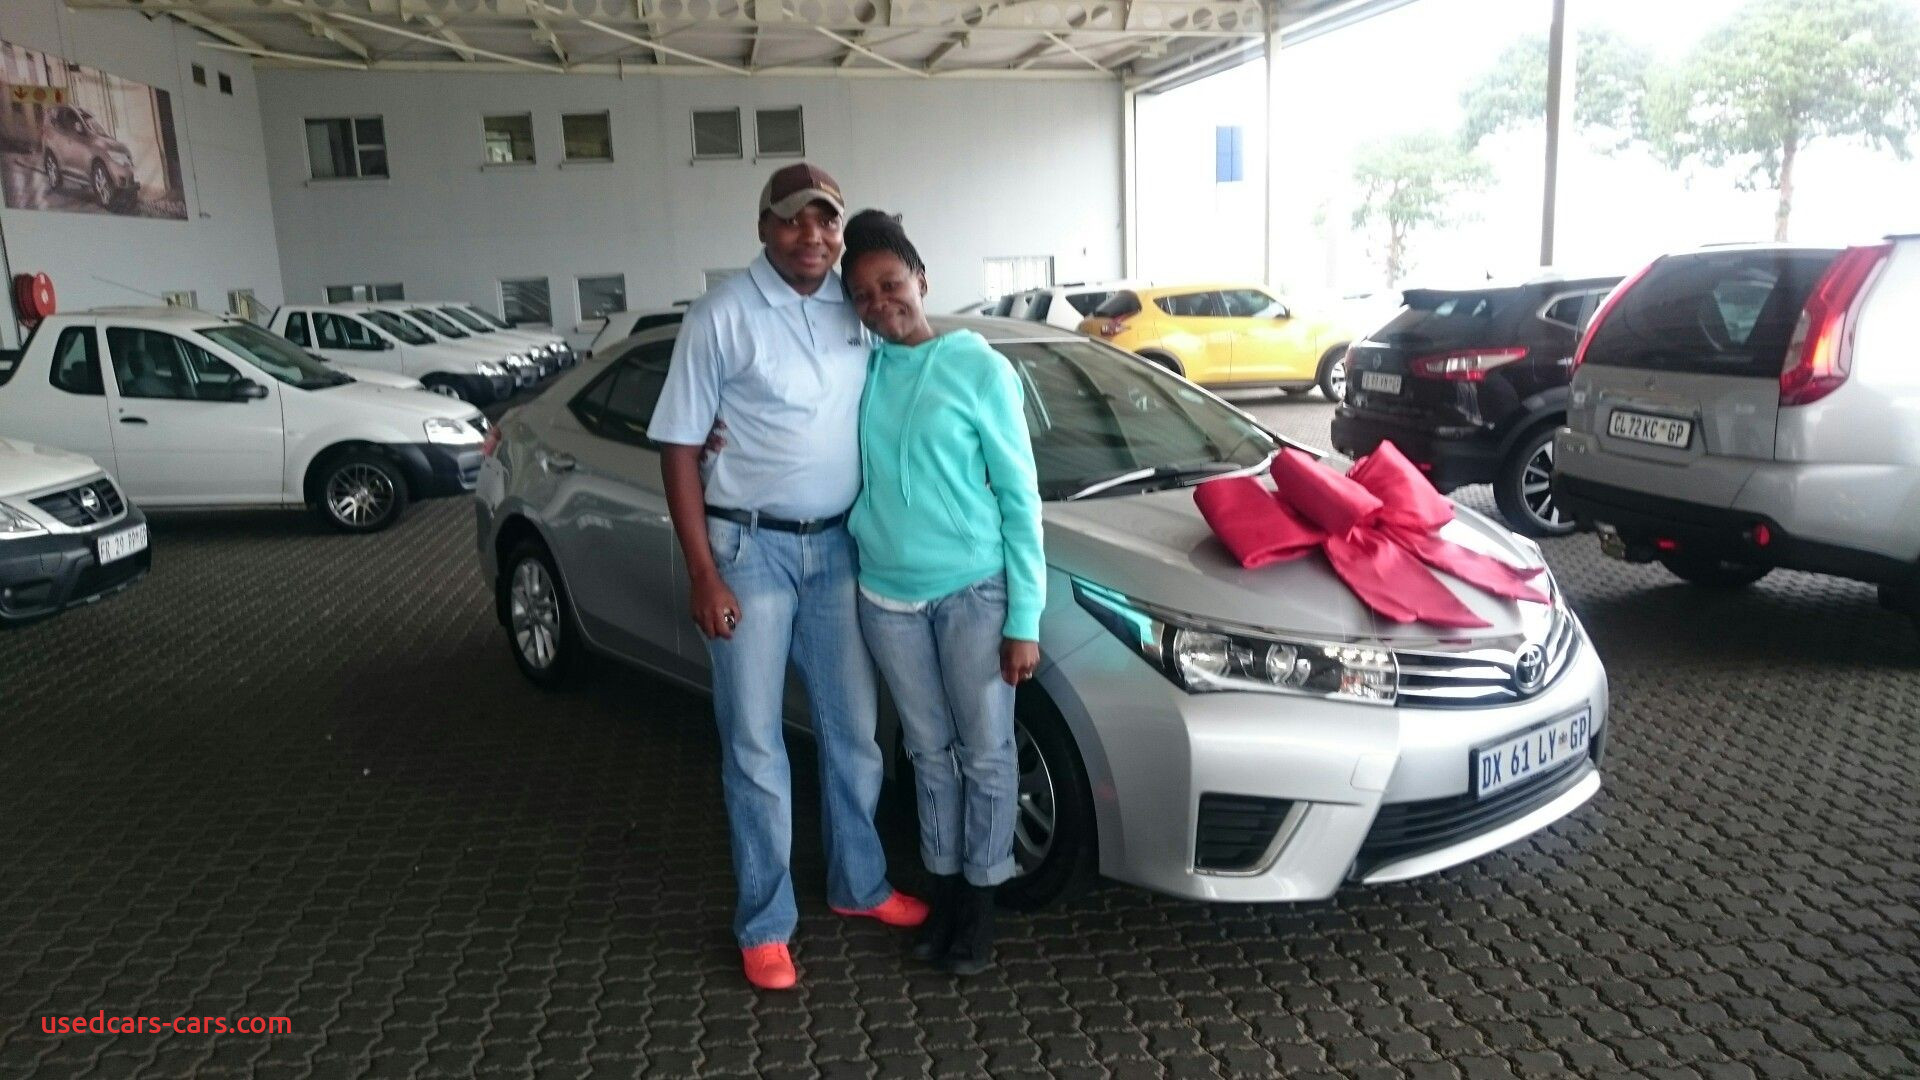 Used Cars for Sale In Gauteng Elegant Pin On Cars for Sale